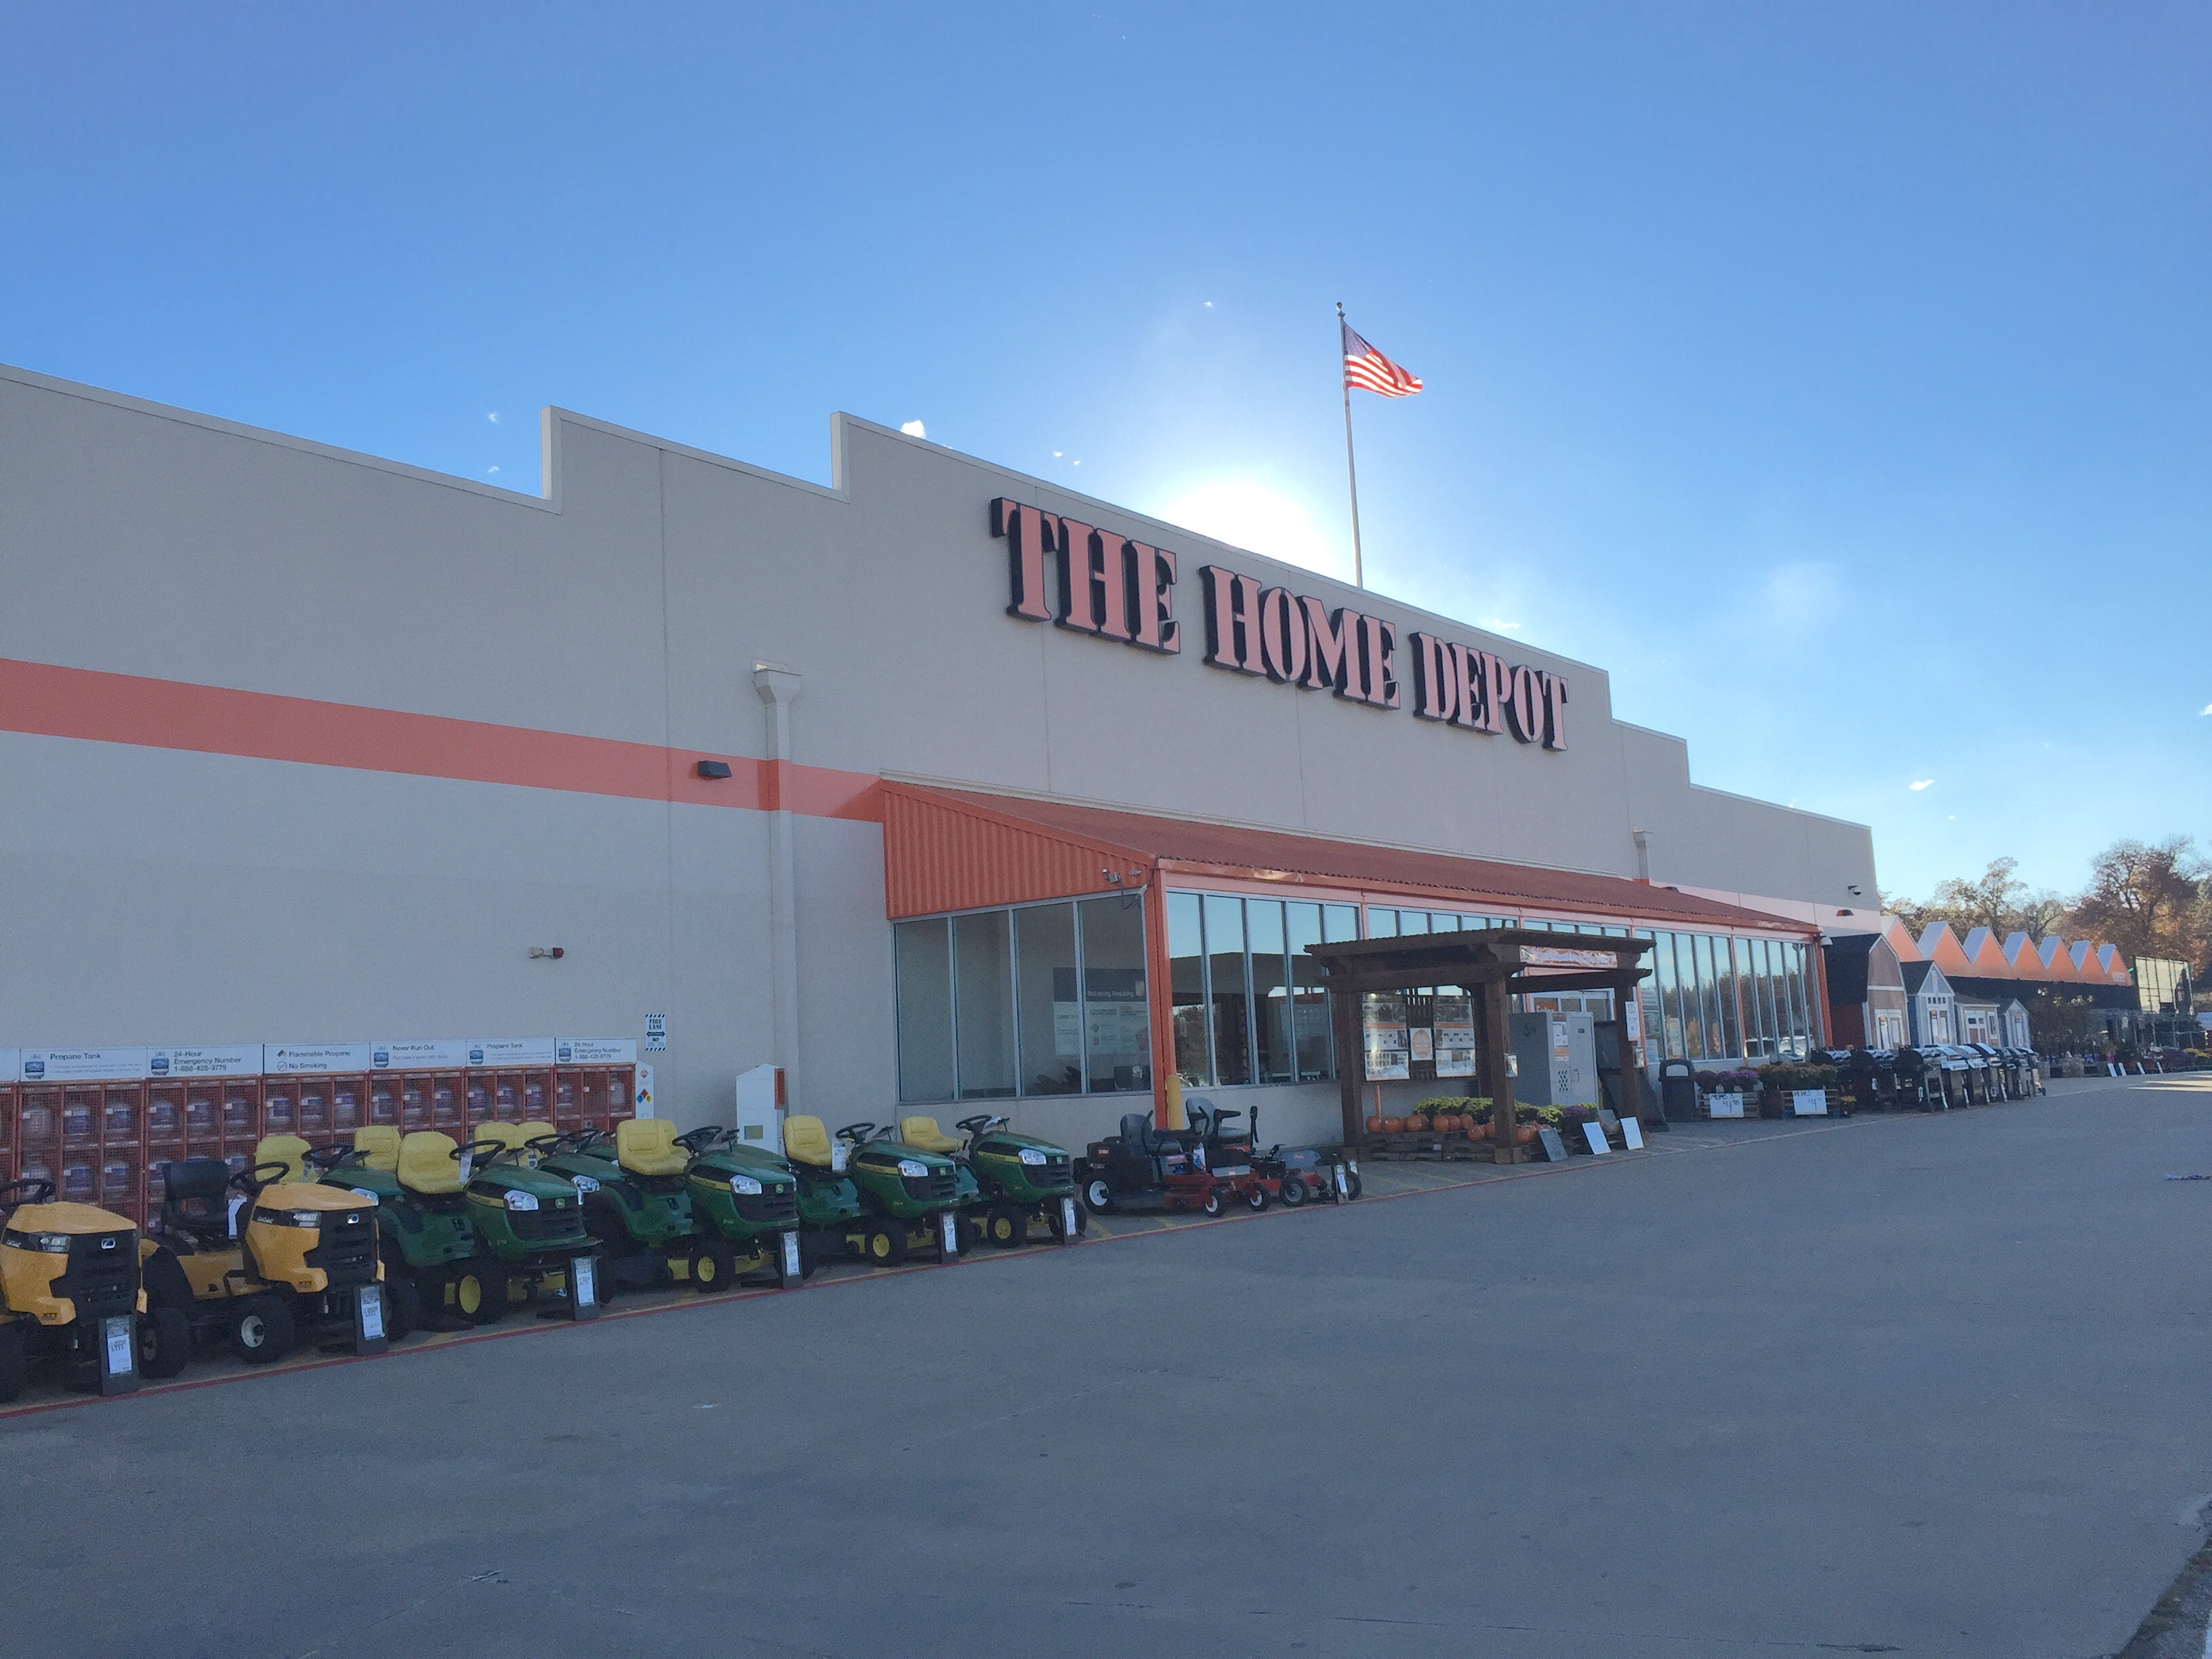 The home depot in mountain home ar 72653 for Furniture depot mountain home arkansas